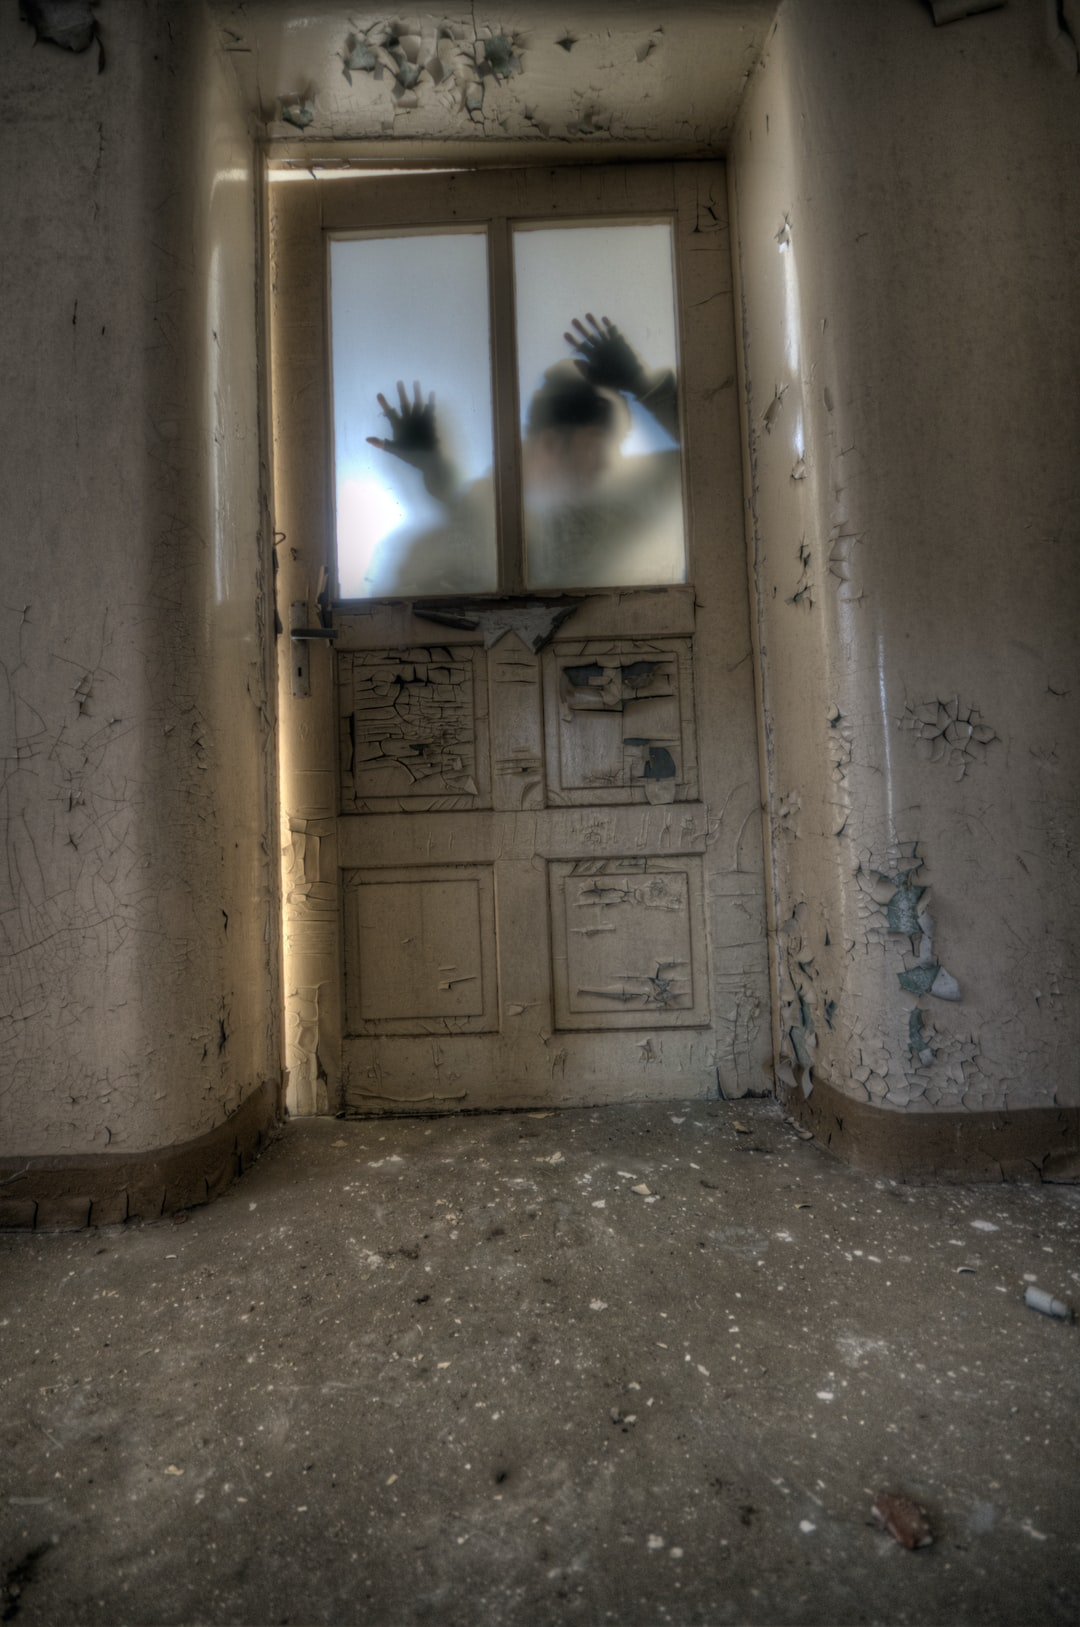 100 Zombie Pictures Download Free Images On Unsplash